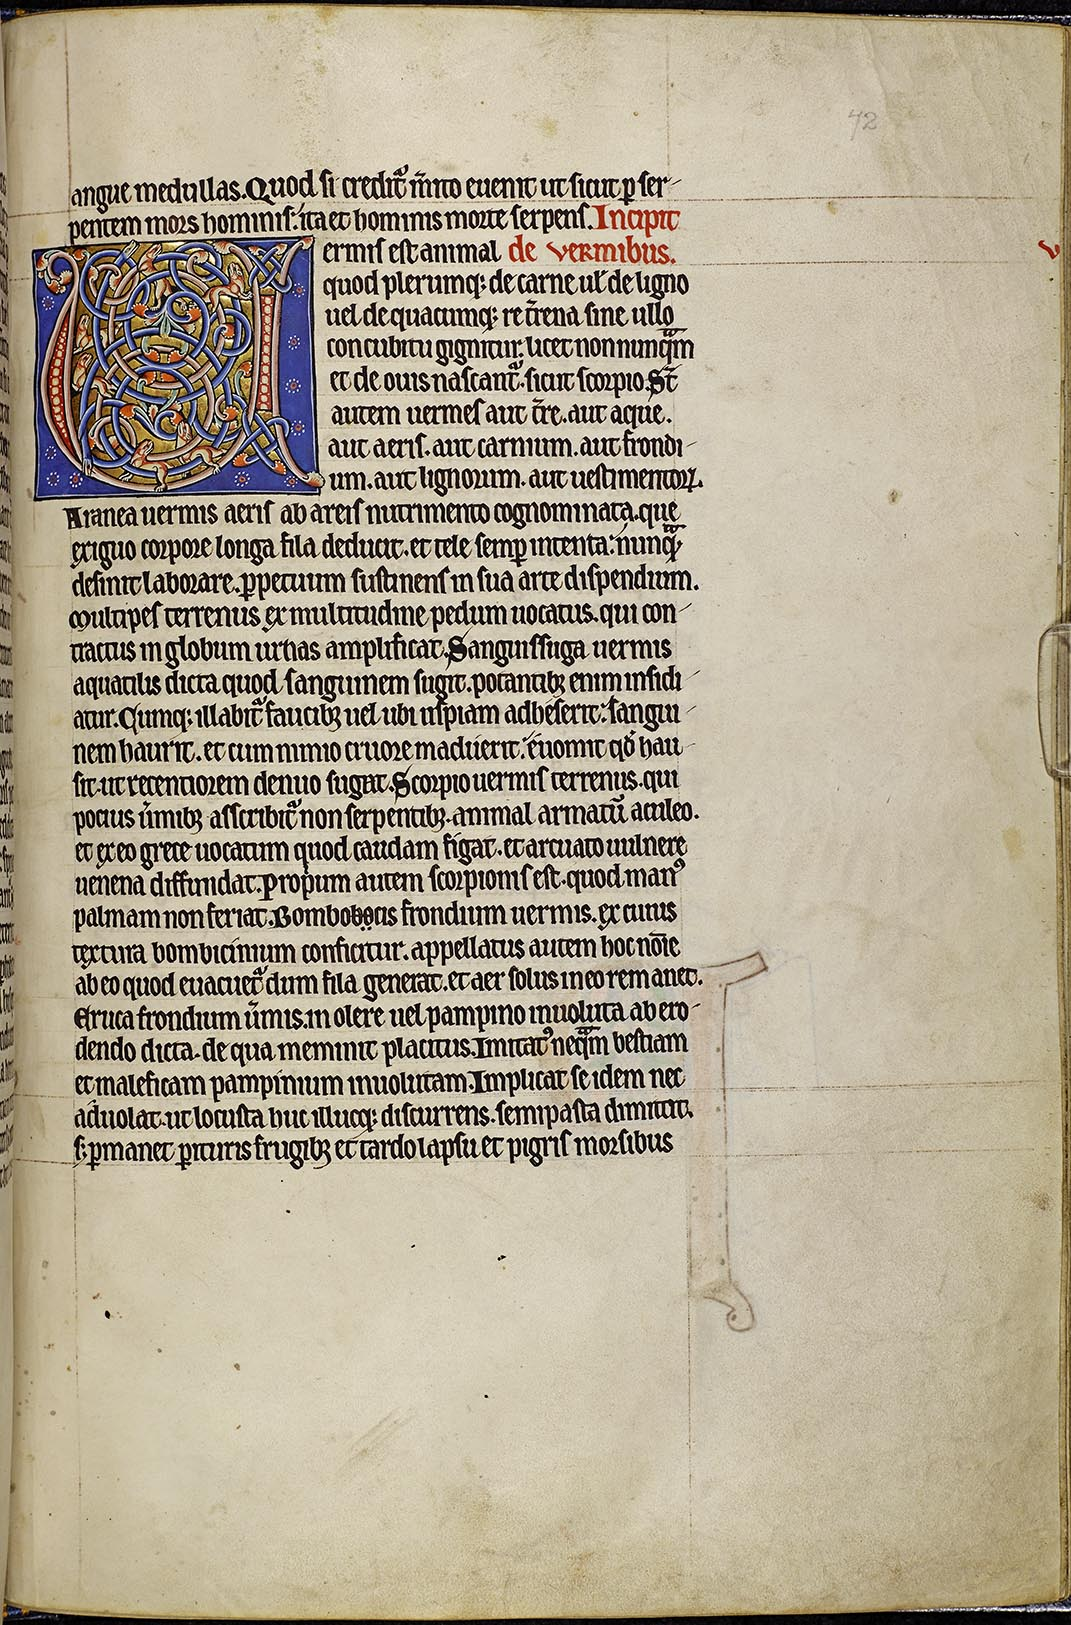 Folio 72r of the Aberdeen Bestiary, https://www.abdn.ac.uk/bestiary/translat/72r.hti